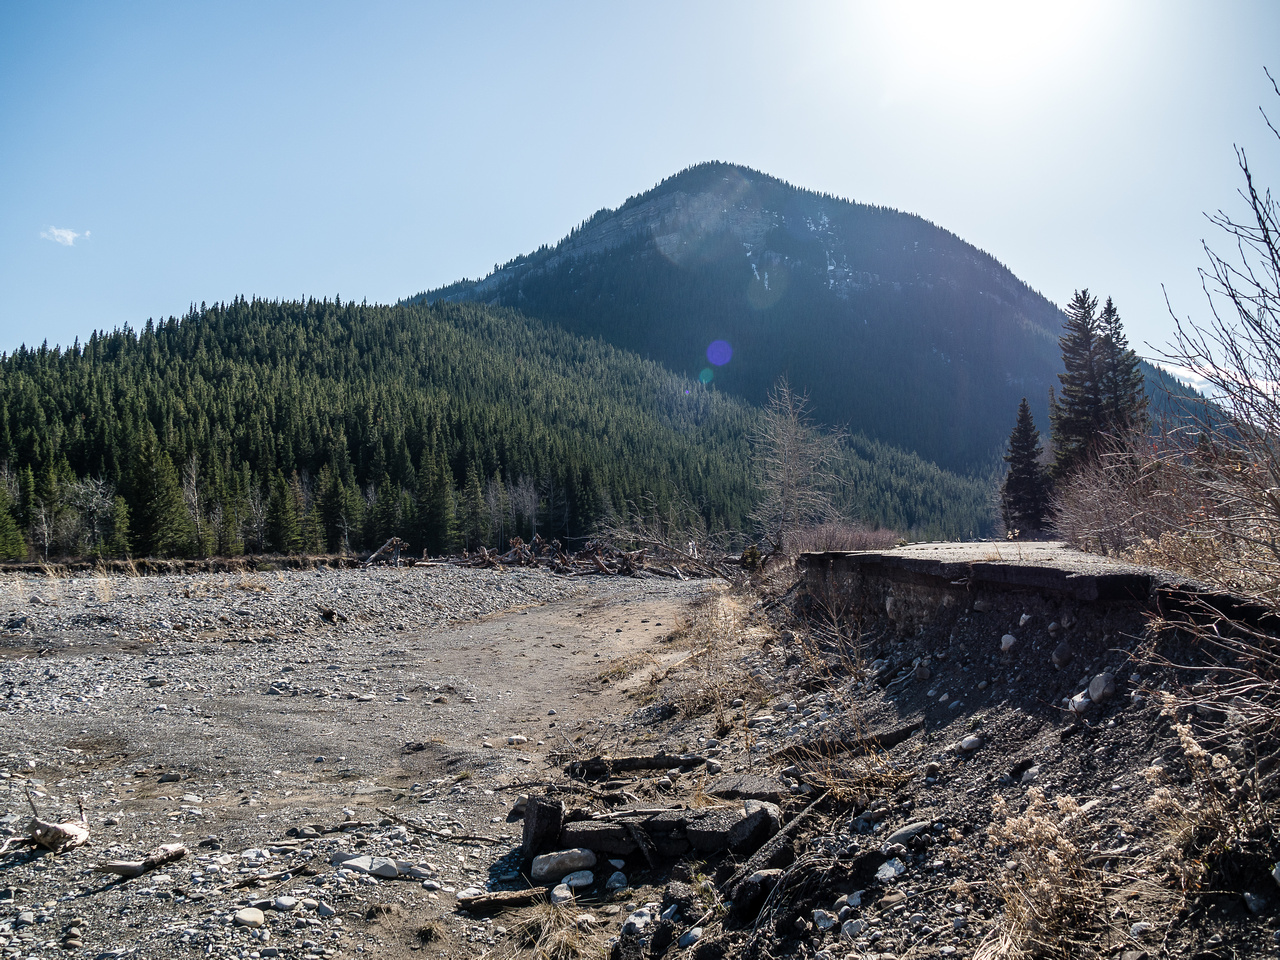 Mount Mann looms over the apocalypse that is the remains of the entrance road to the Sentinel Provincial Recreation Area - destroyed in the 2013 floods.